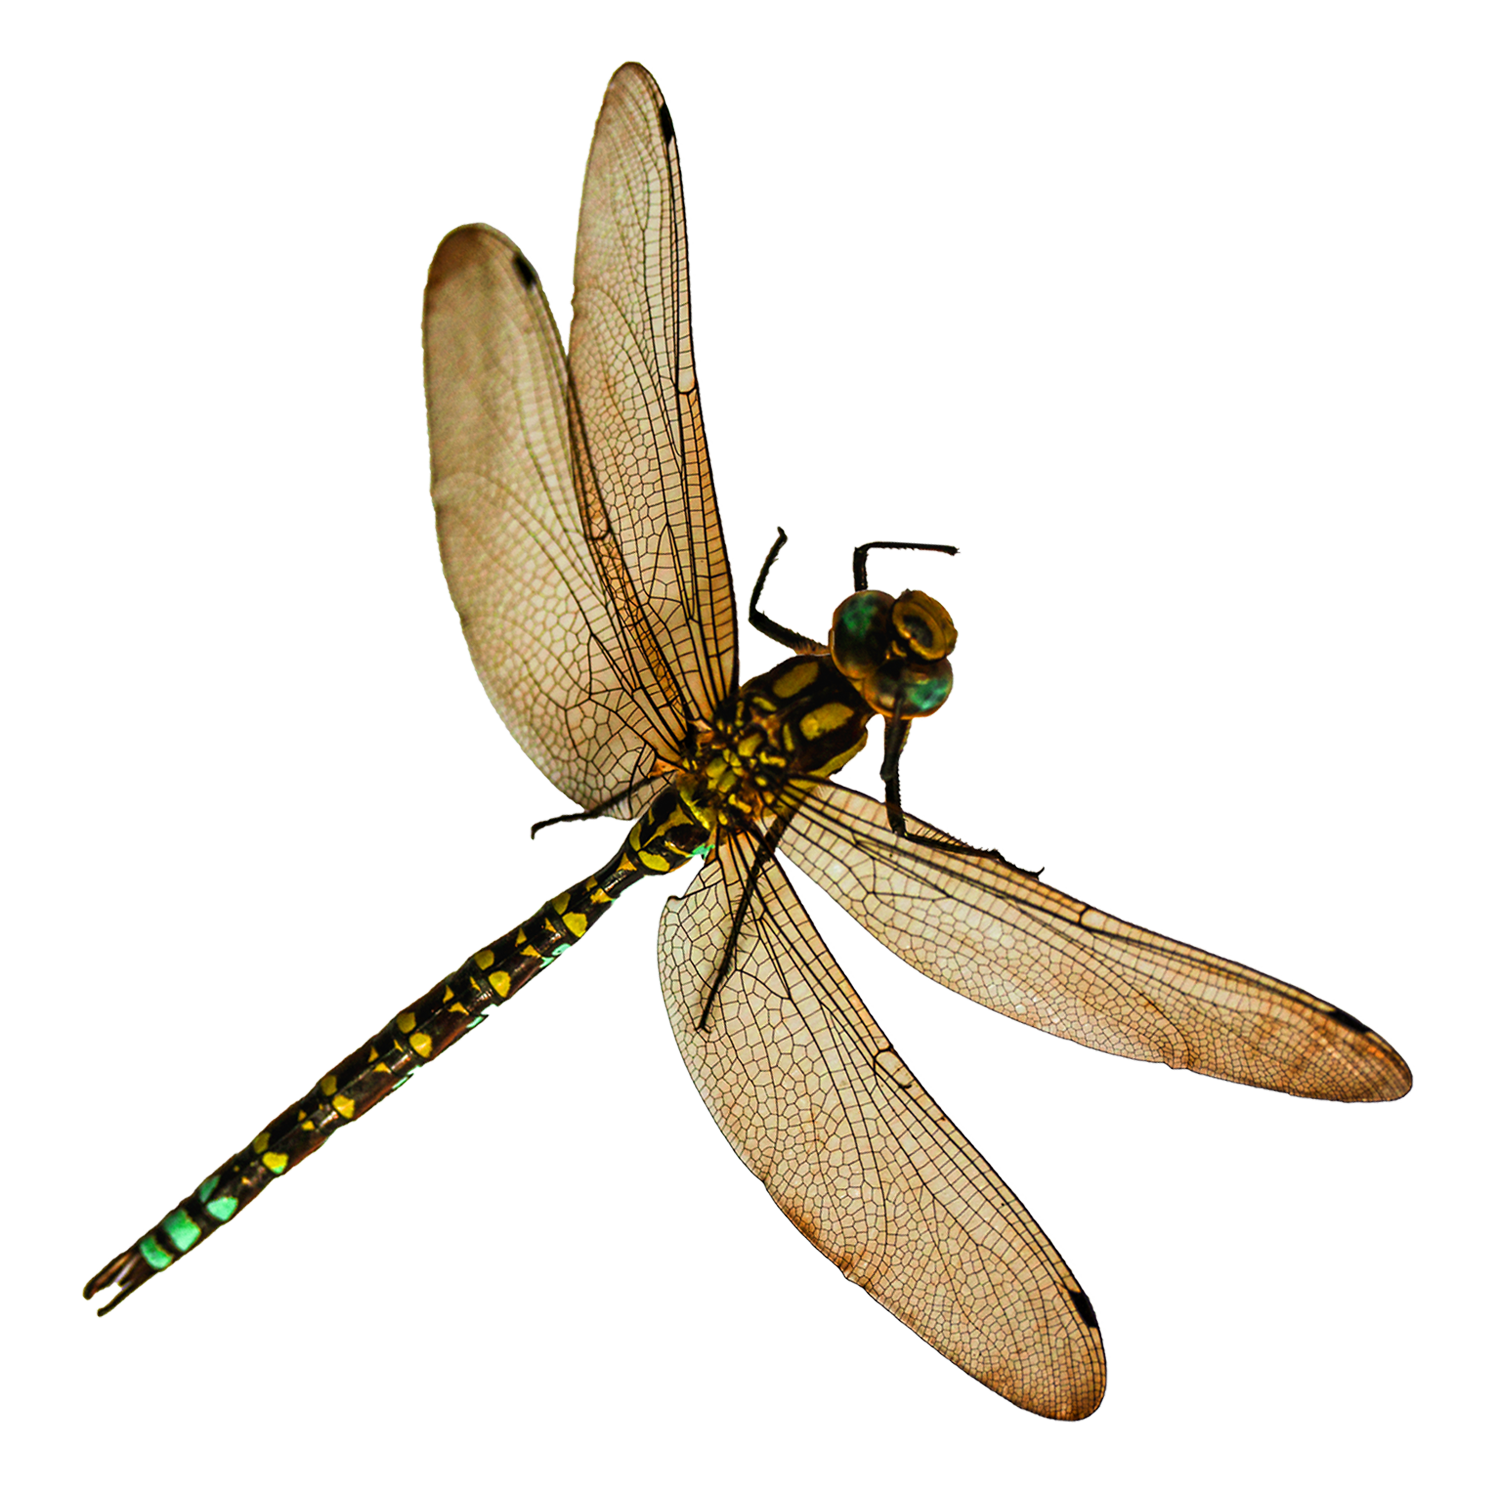 Dragonfly PNG Image